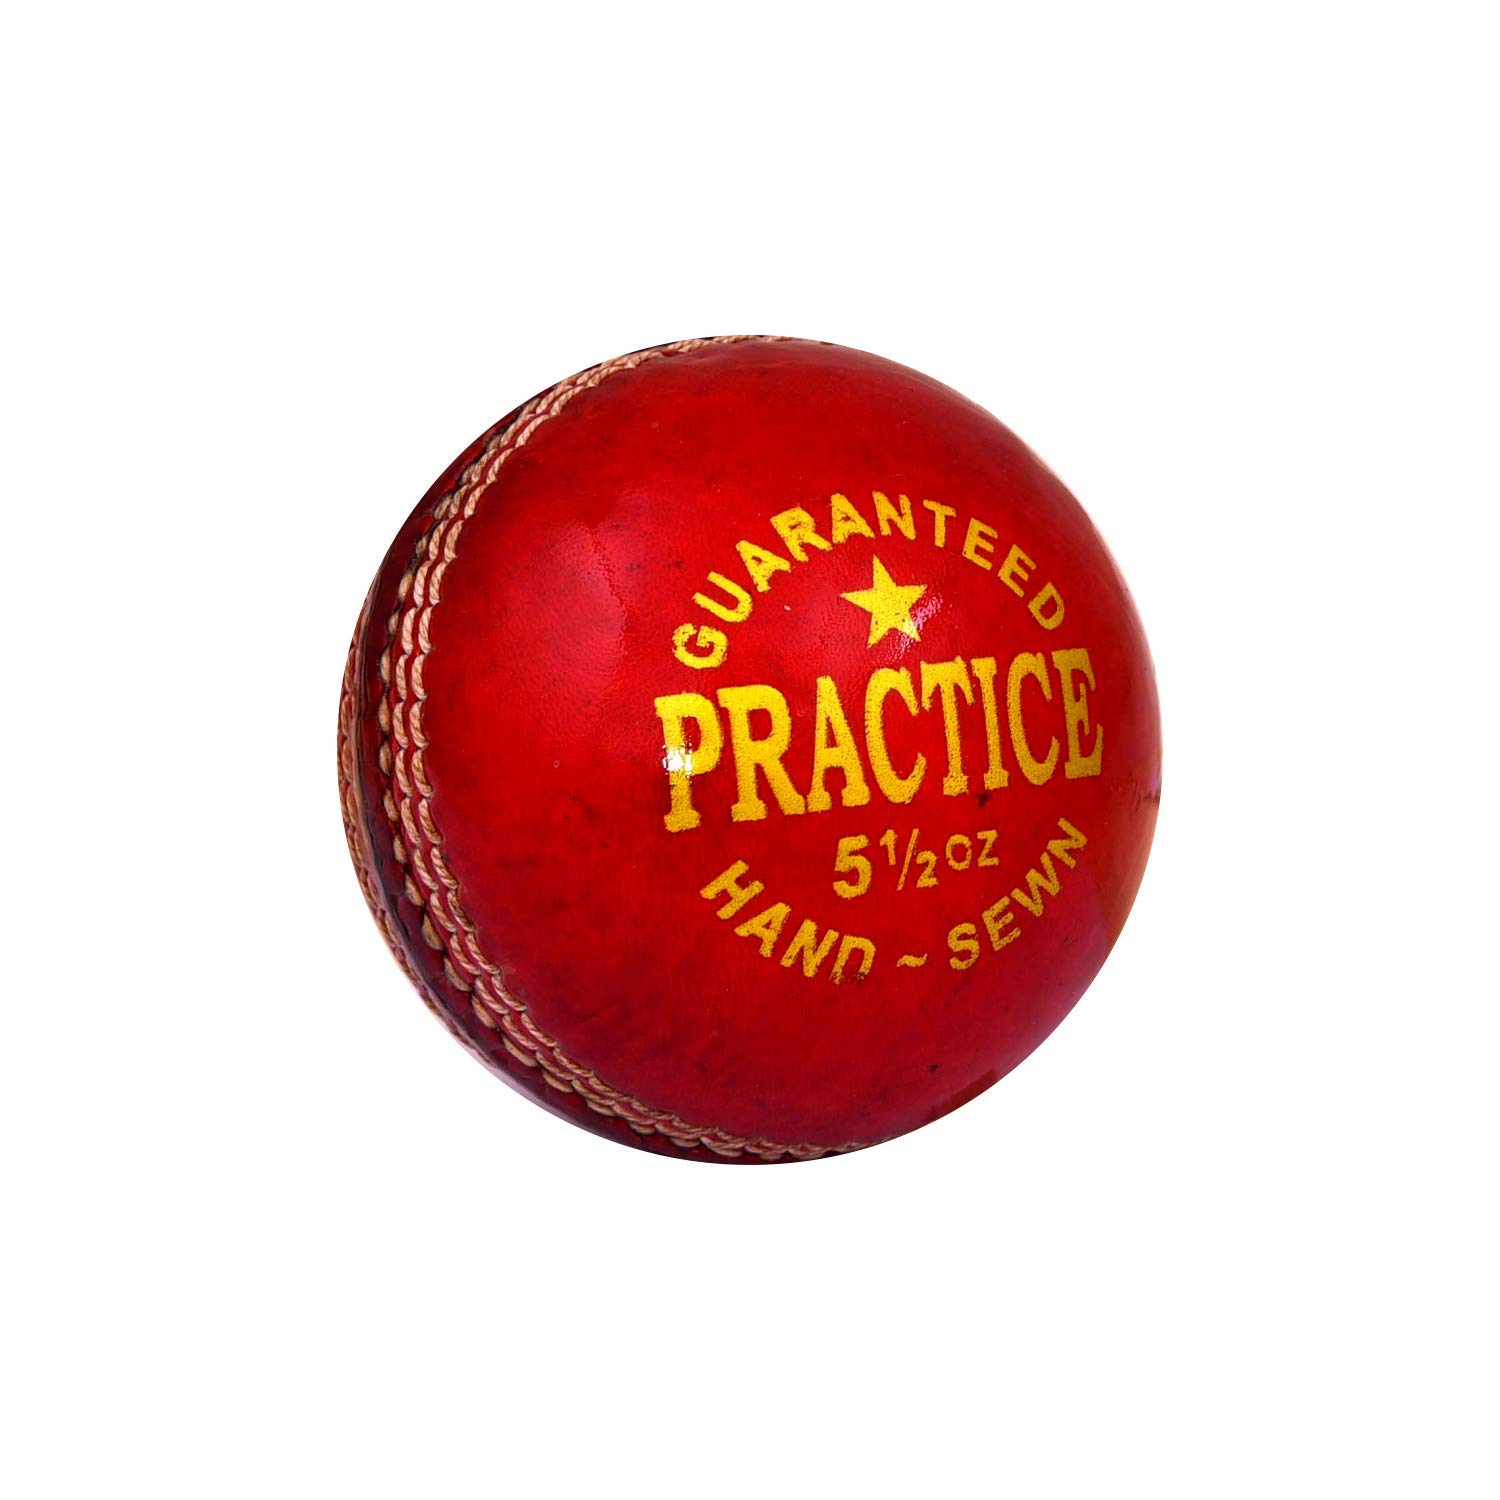 Jager-Smith Practice Leather Cricket Ball (Red)